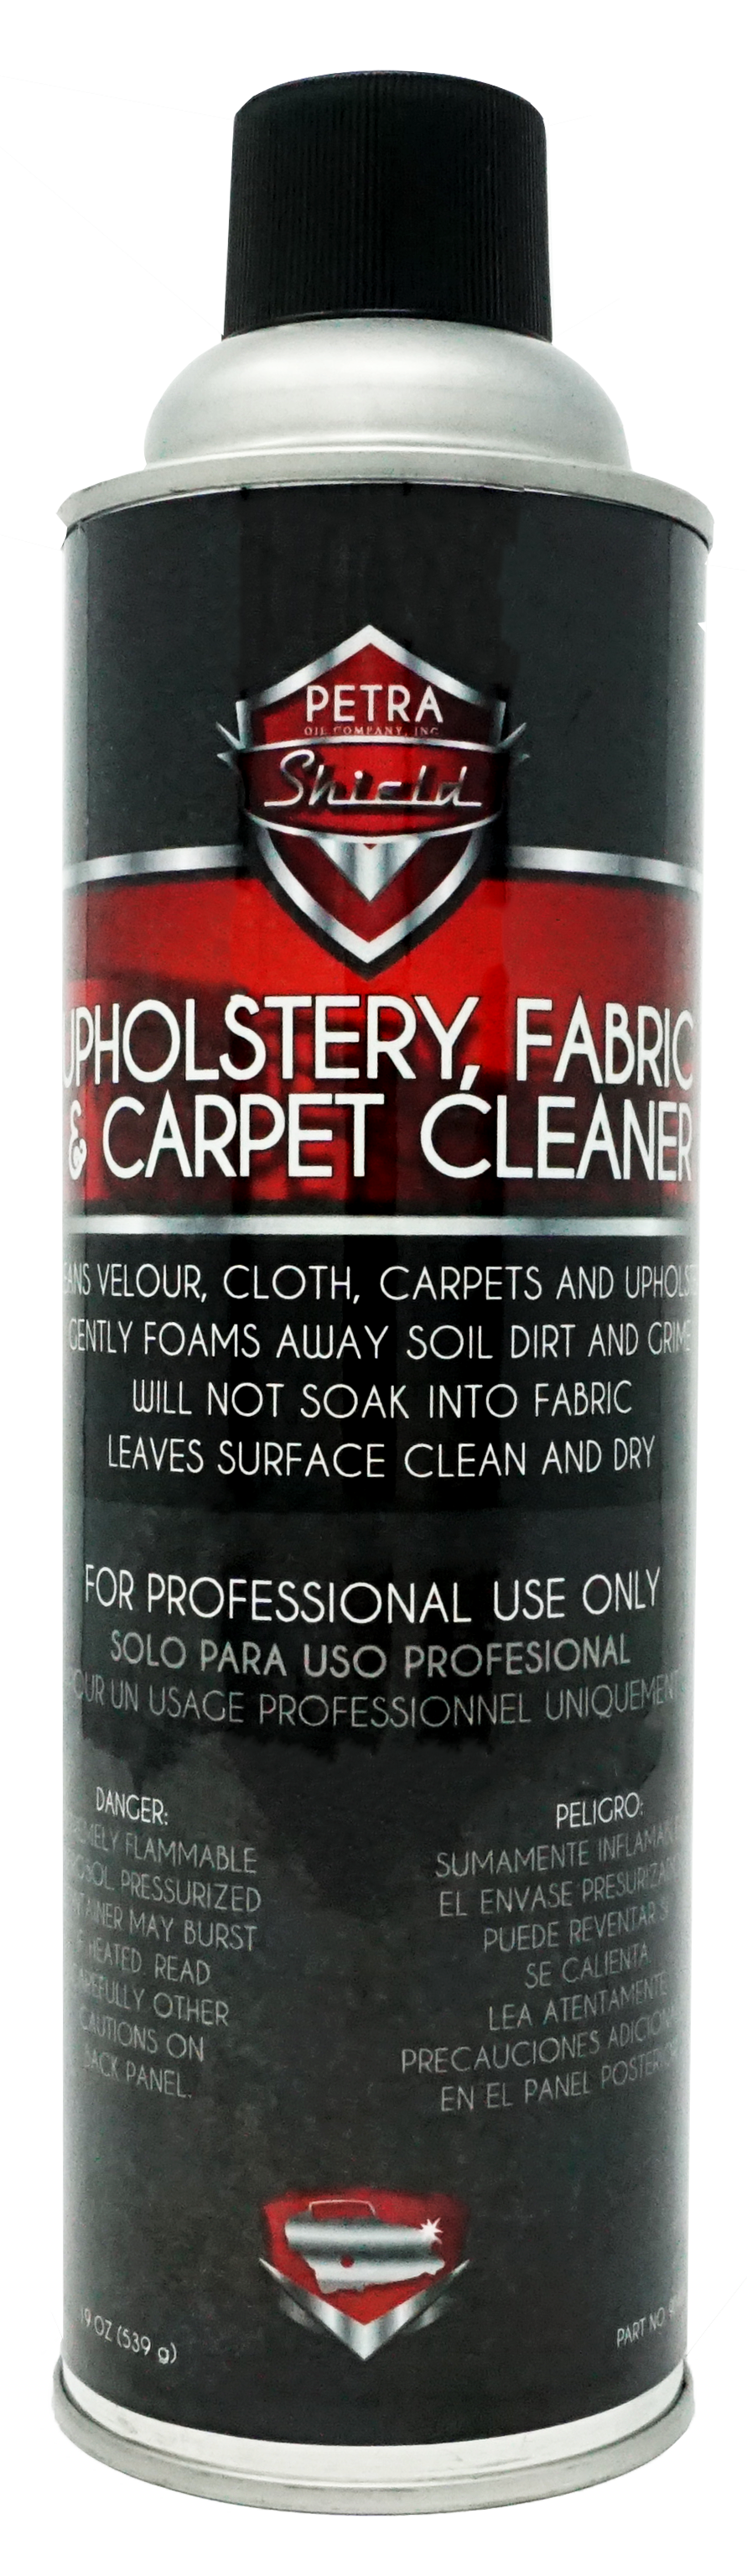 PN 9D409 Upholstery, Fabric and Carpet Cleaner